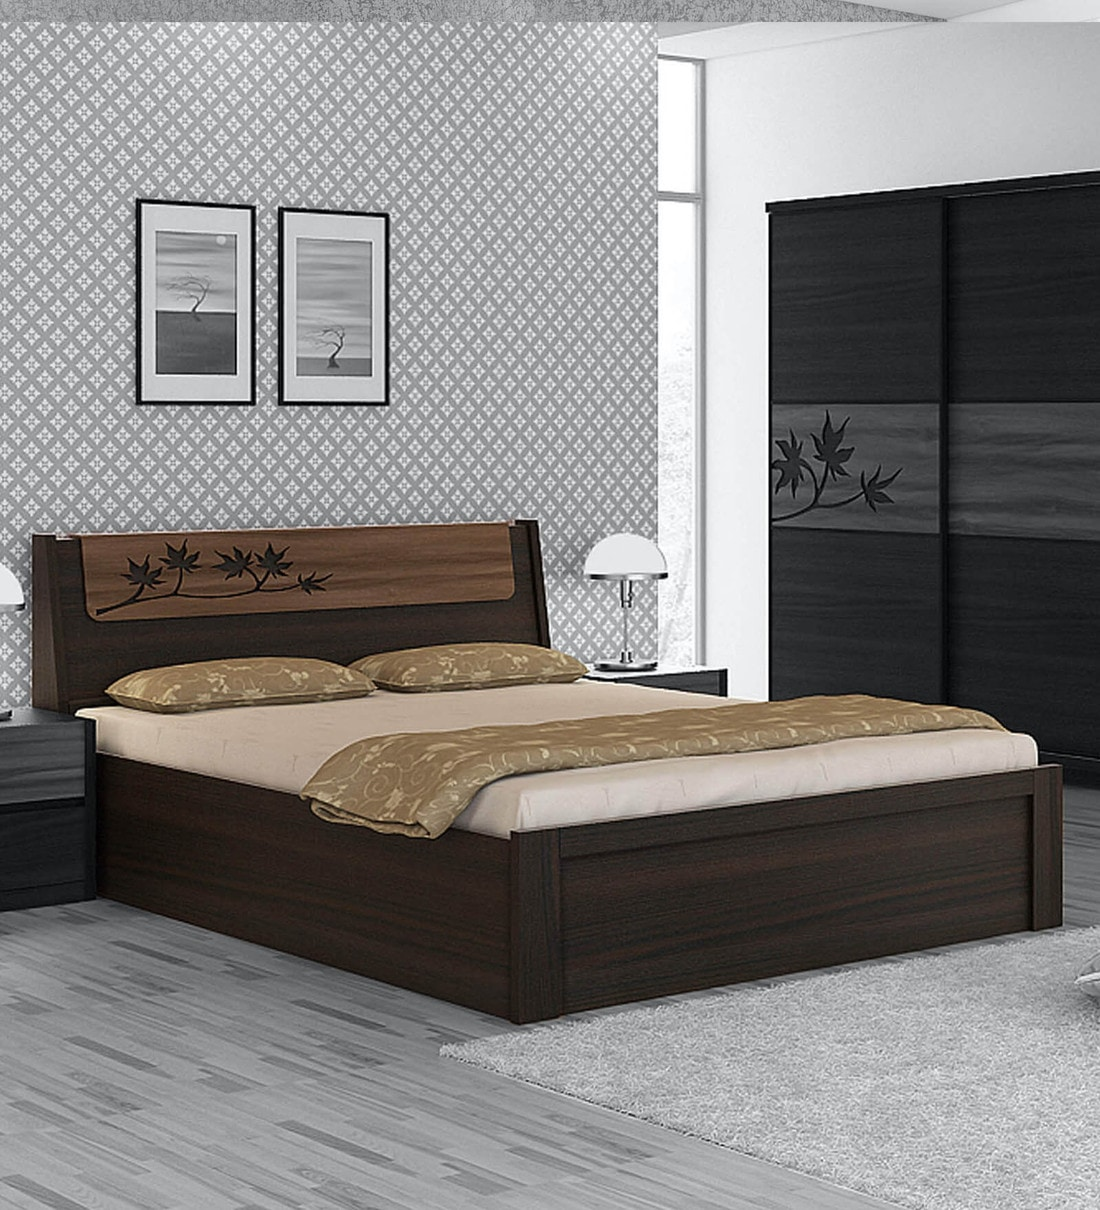 Buy Kosmo Maple King Size Bed With Storage In Fumed Oak Melamine Finish By Spacewood Online Transitional King Size Beds Beds Furniture Pepperfry Product